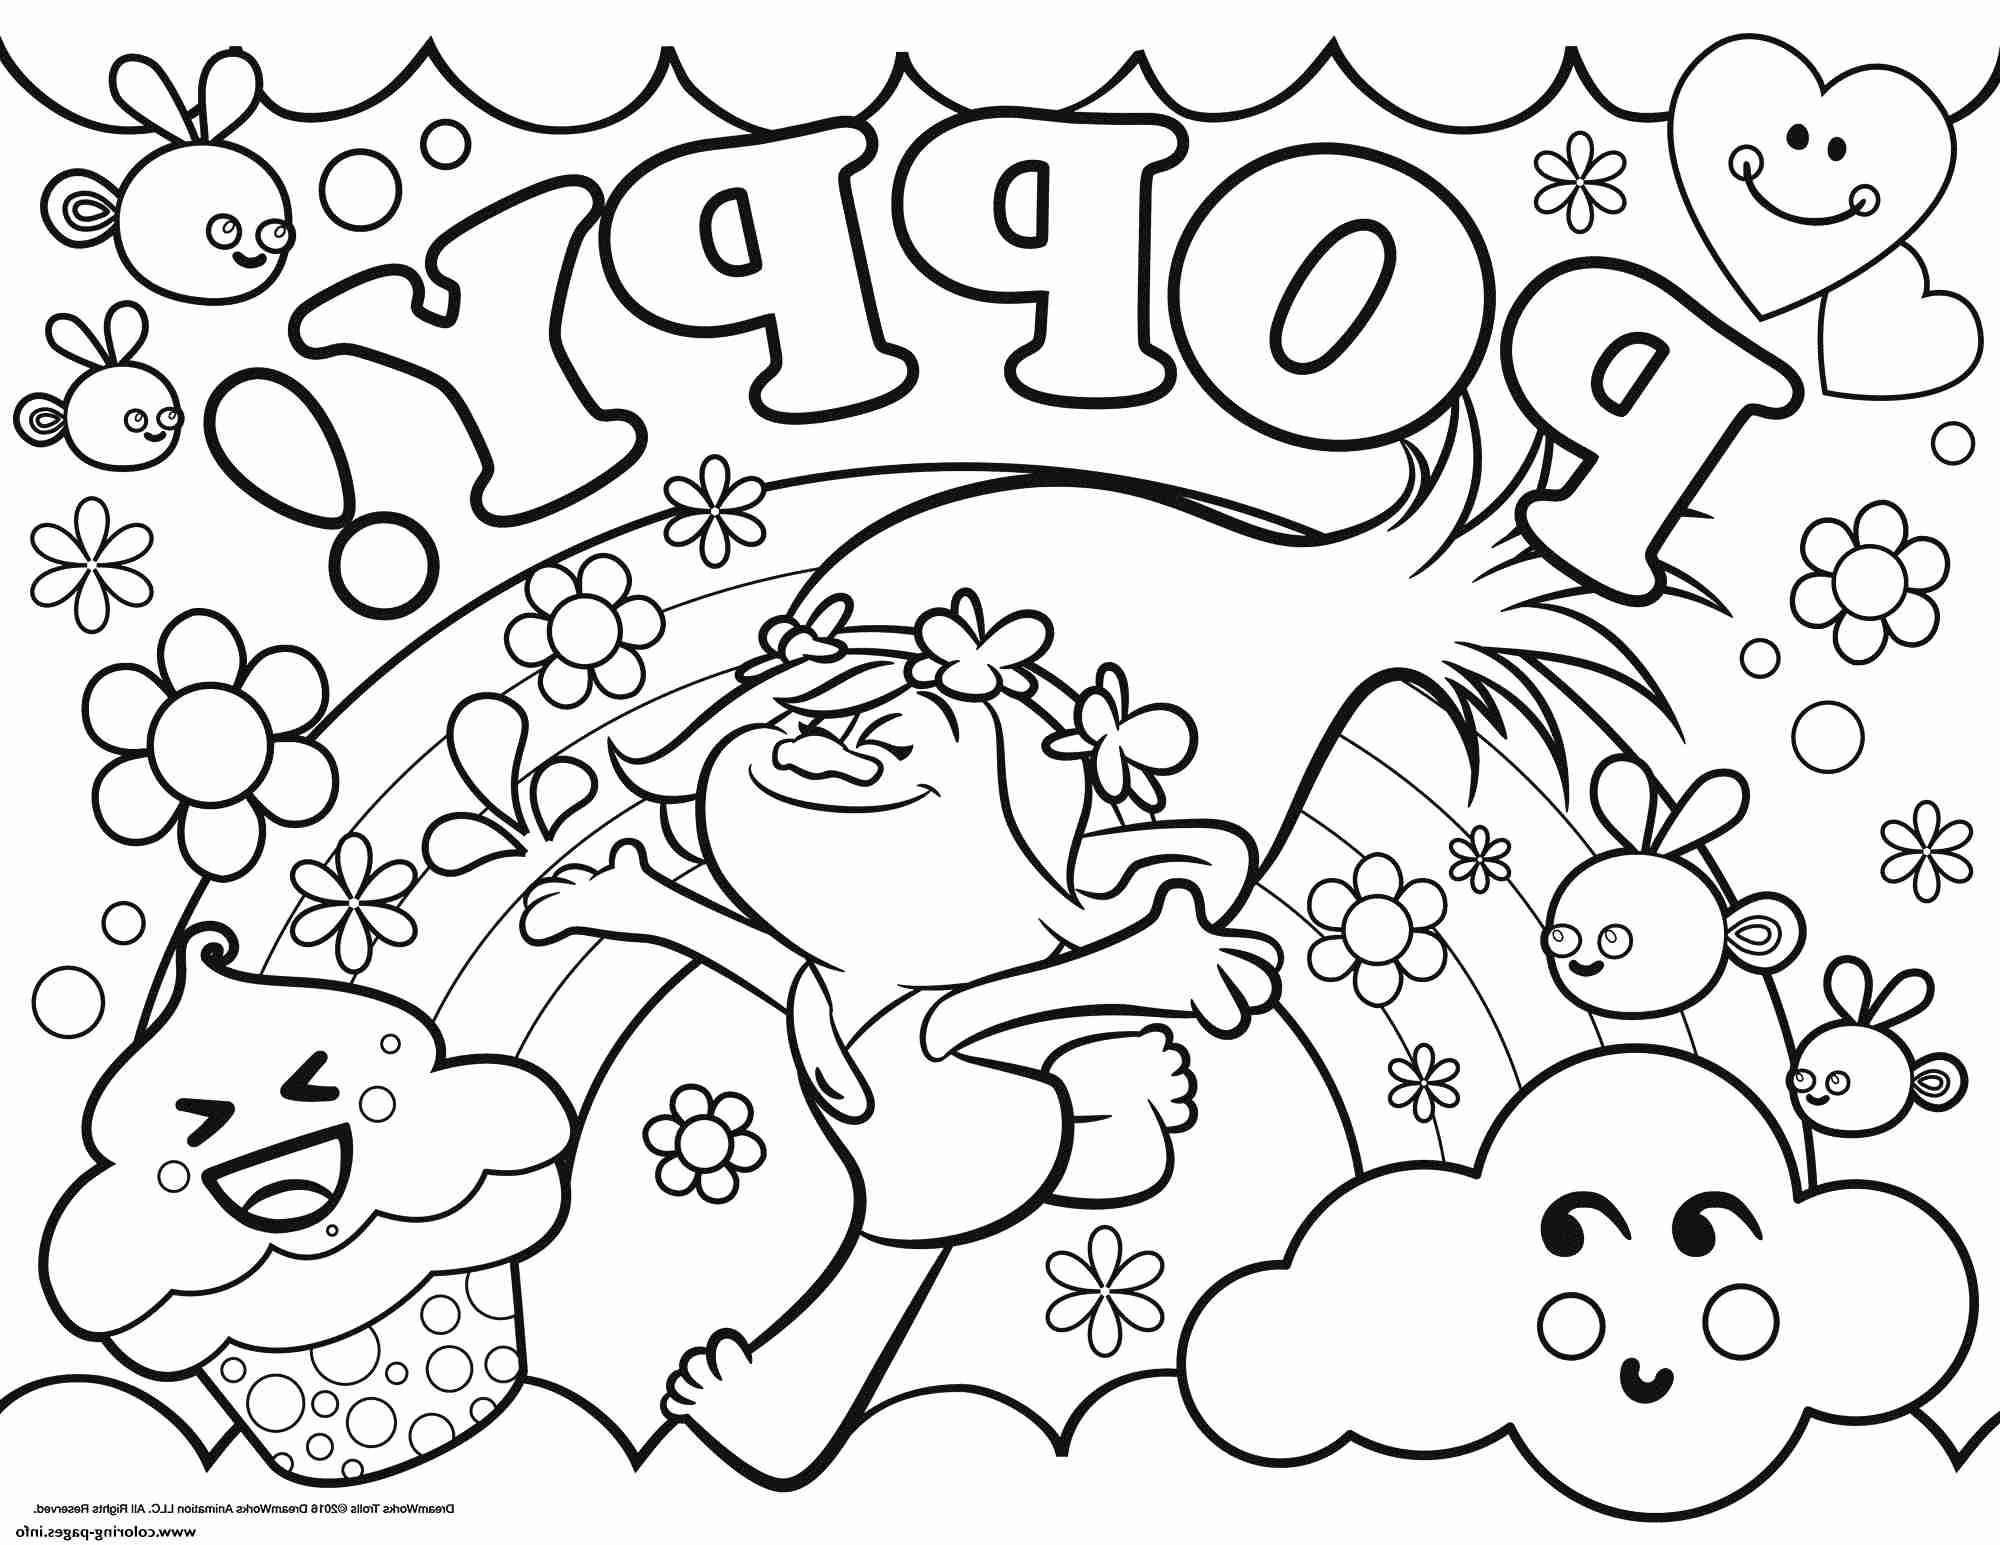 2000x1545 Trolls Coloring Pages Poppy Free Printable From Page